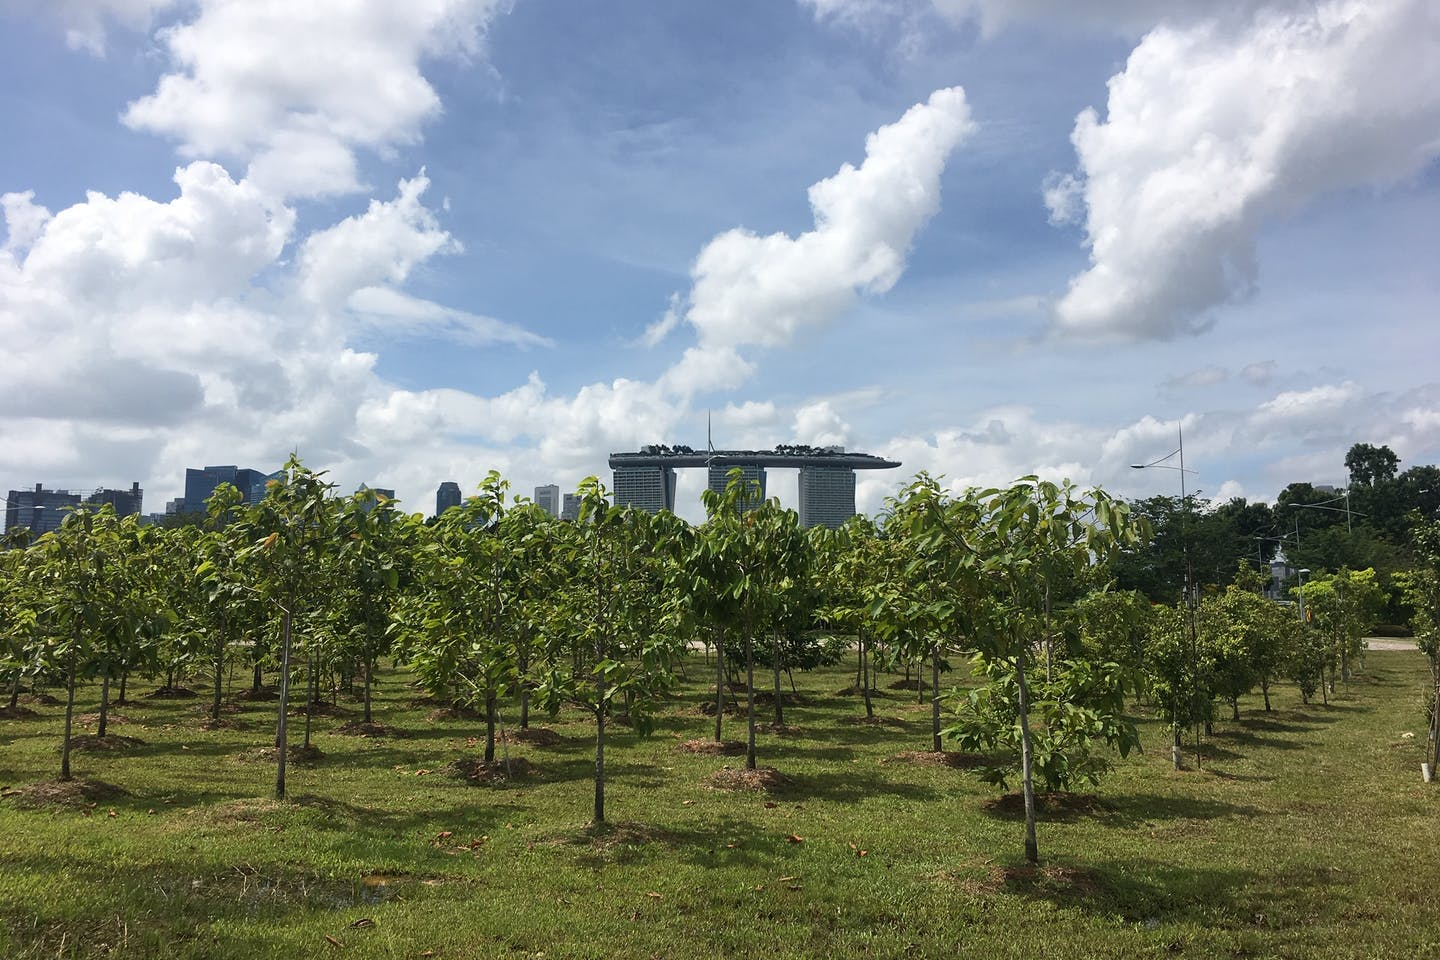 A grove of trees growing on Marina Barrage, Singapore, with the iconic Marina Bay Sands in the background. Image: Eco-Business